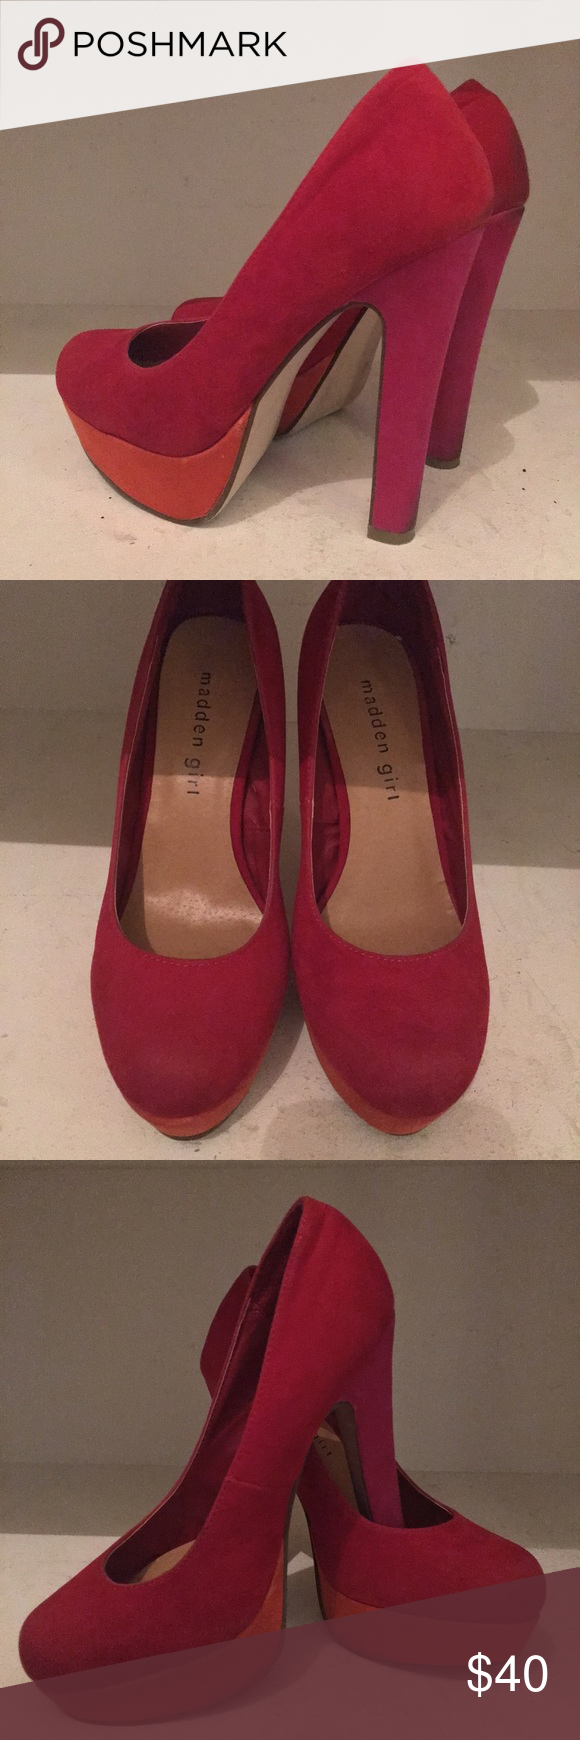 Madden Girl Colorblock Heels Great condition beautiful shoes. The heel is pink, sole is orange and base is red. No signs of damage just minor wear undetectable unless you're looking for it Madden Girl Shoes Heels